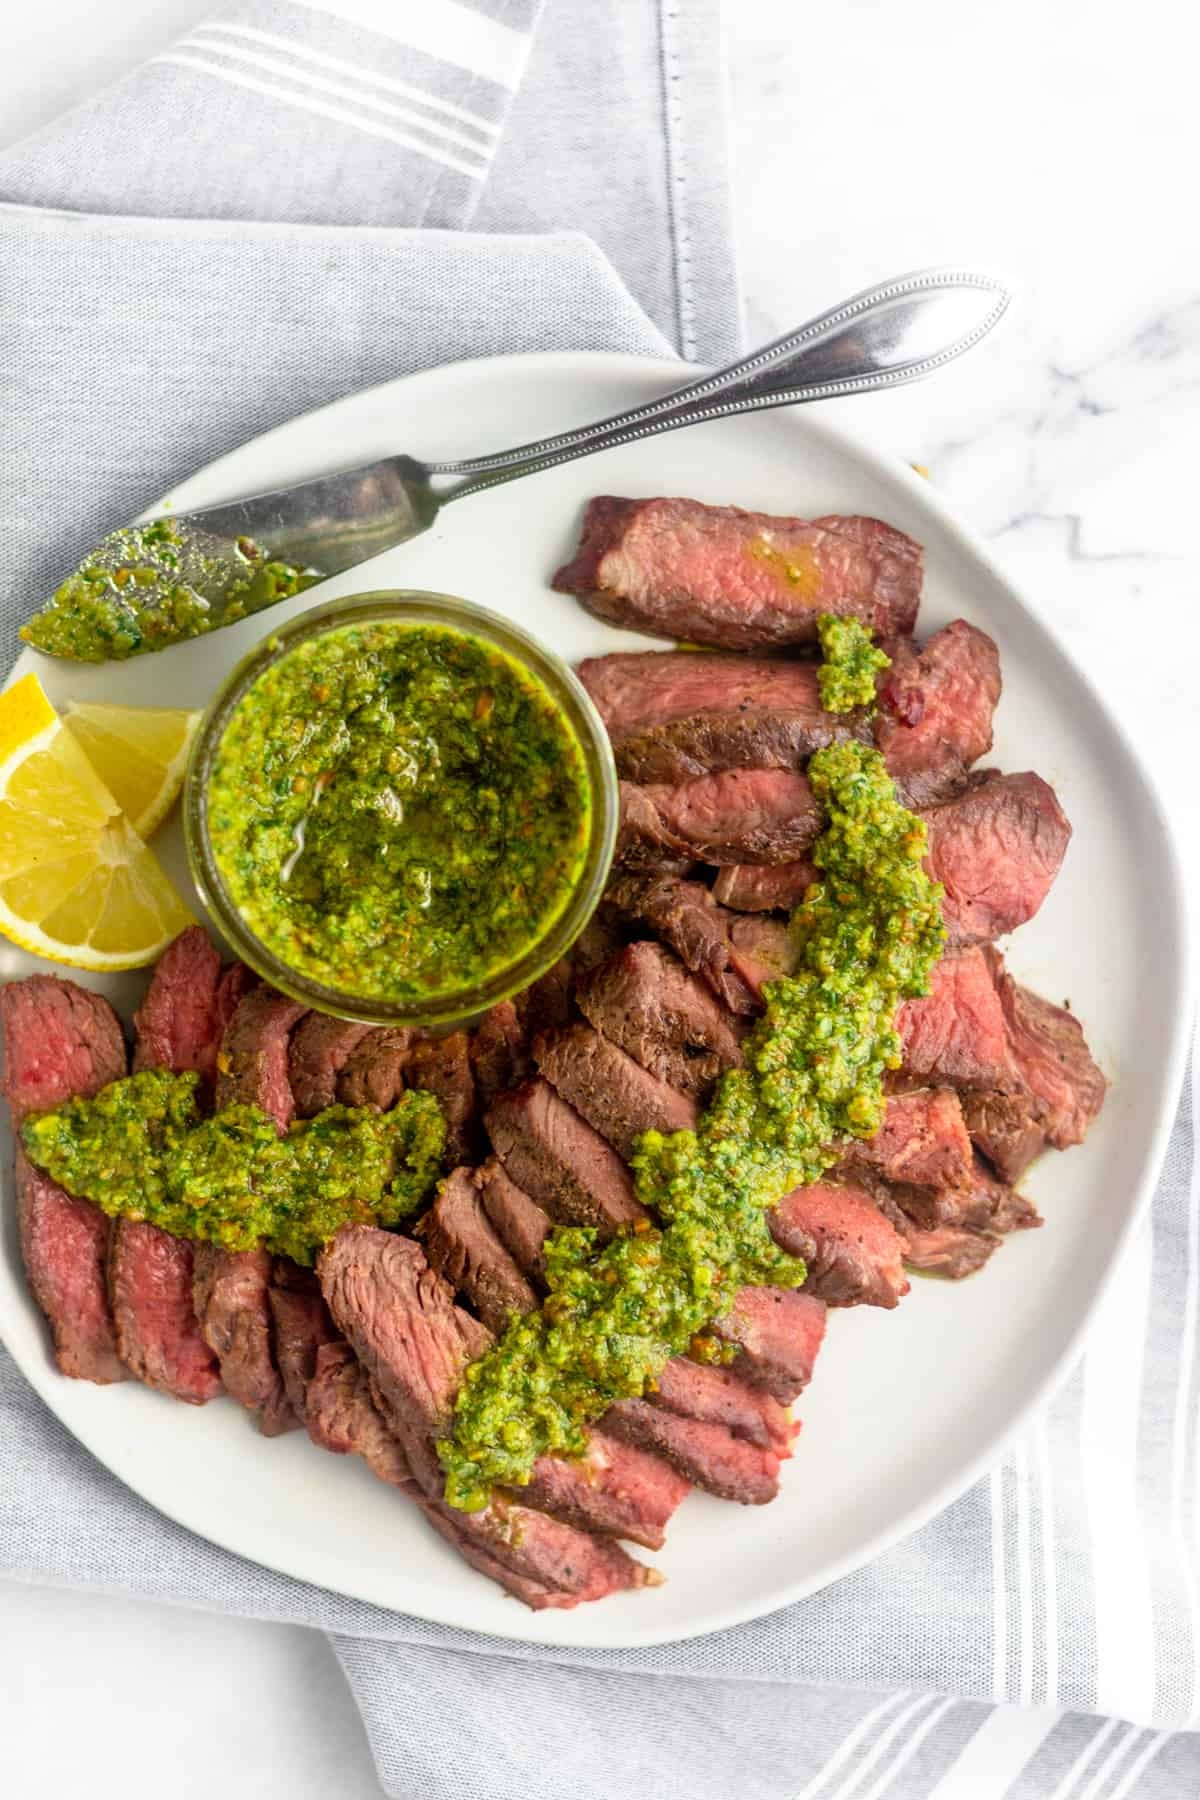 Overhead view of cut up grilled steak topped with pistachio pesto along with a jar of pesto, a small knife, and cut up lemons